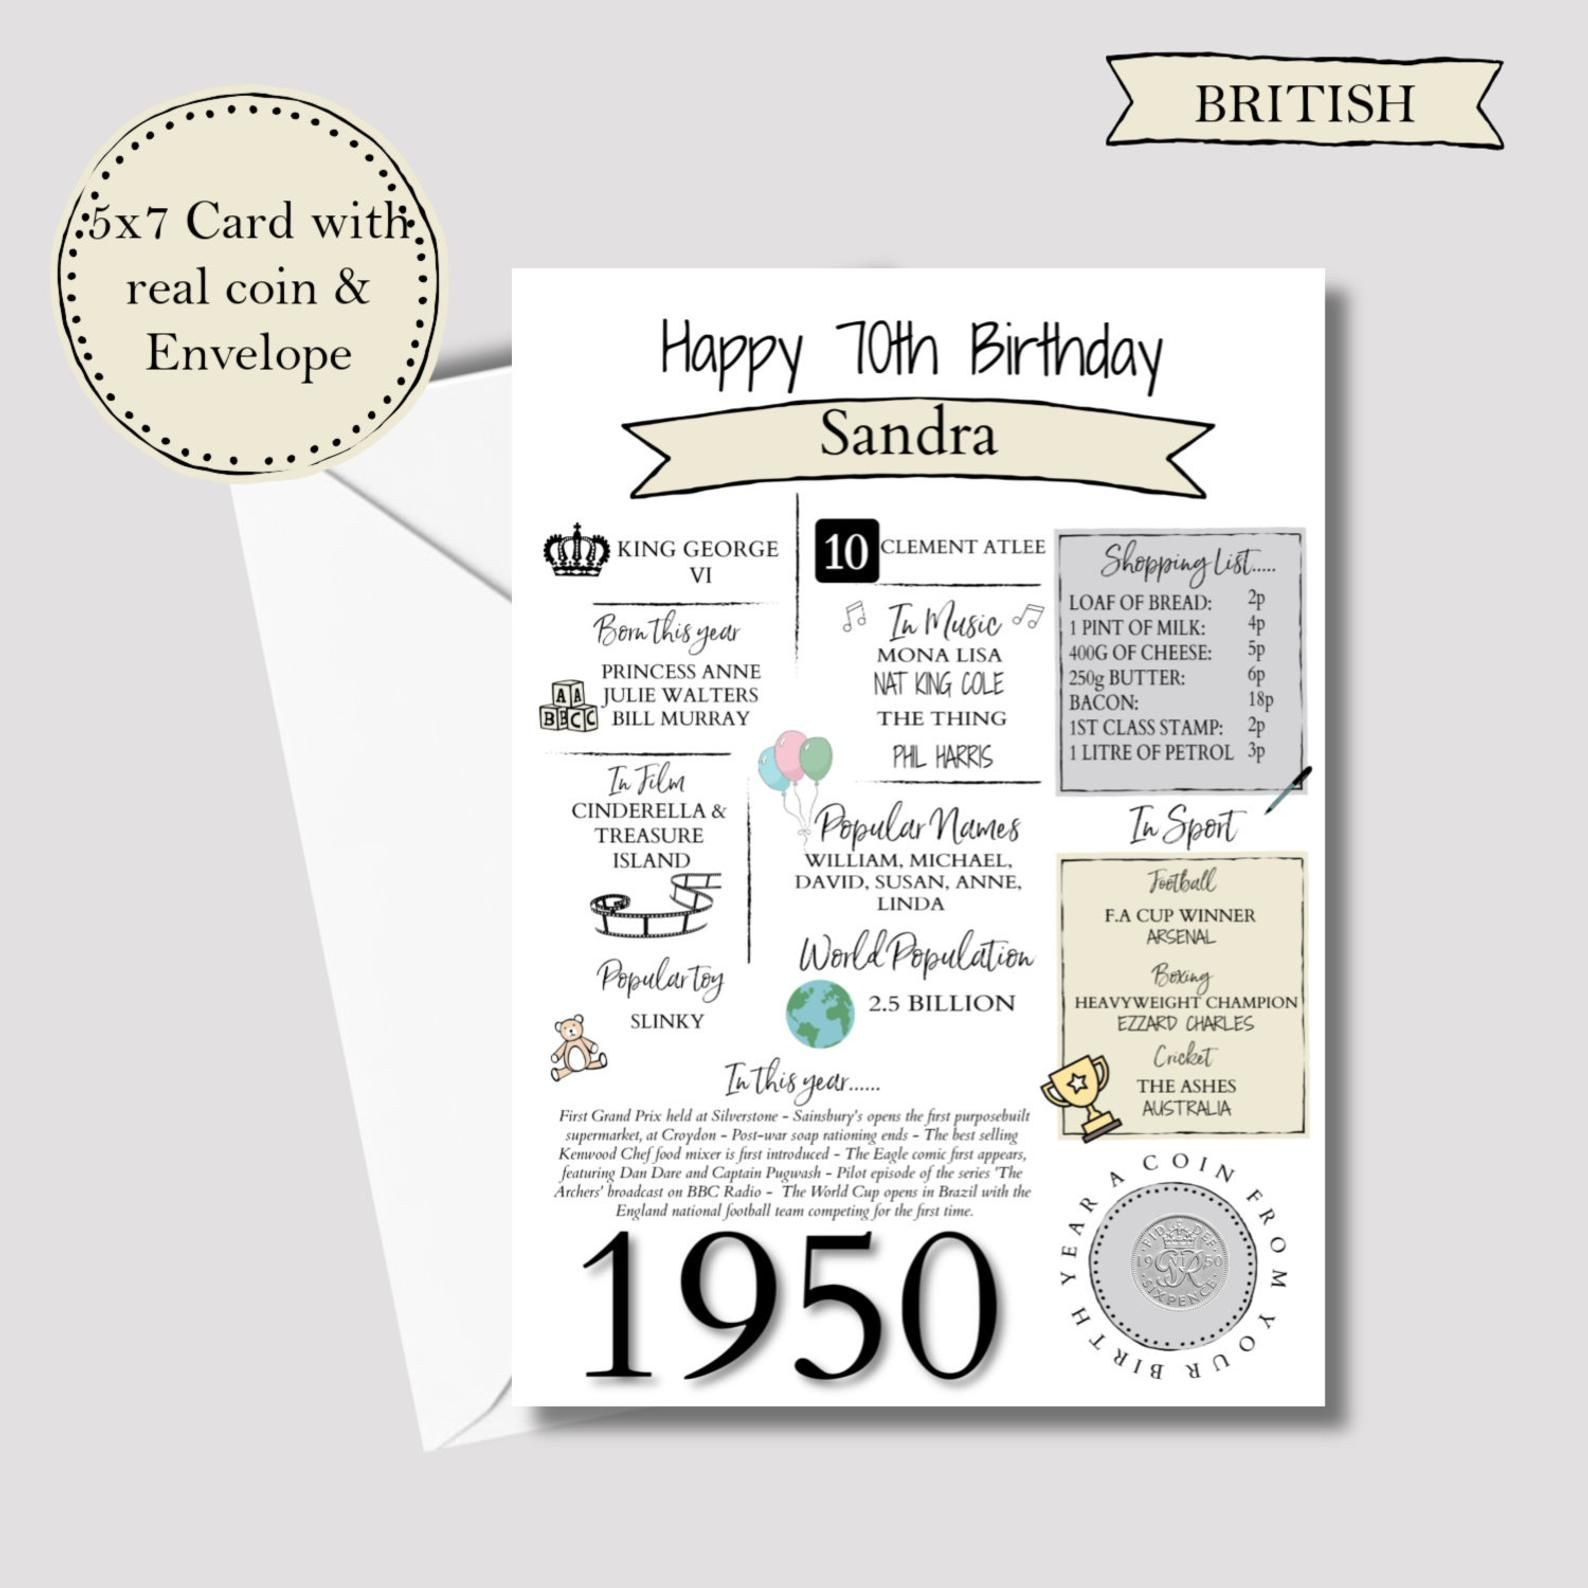 Personalised 70th Birthday Card With 1950 Sixpence In Britain Etsy Boy 16th Birthday 70th Birthday Card 70th Birthday